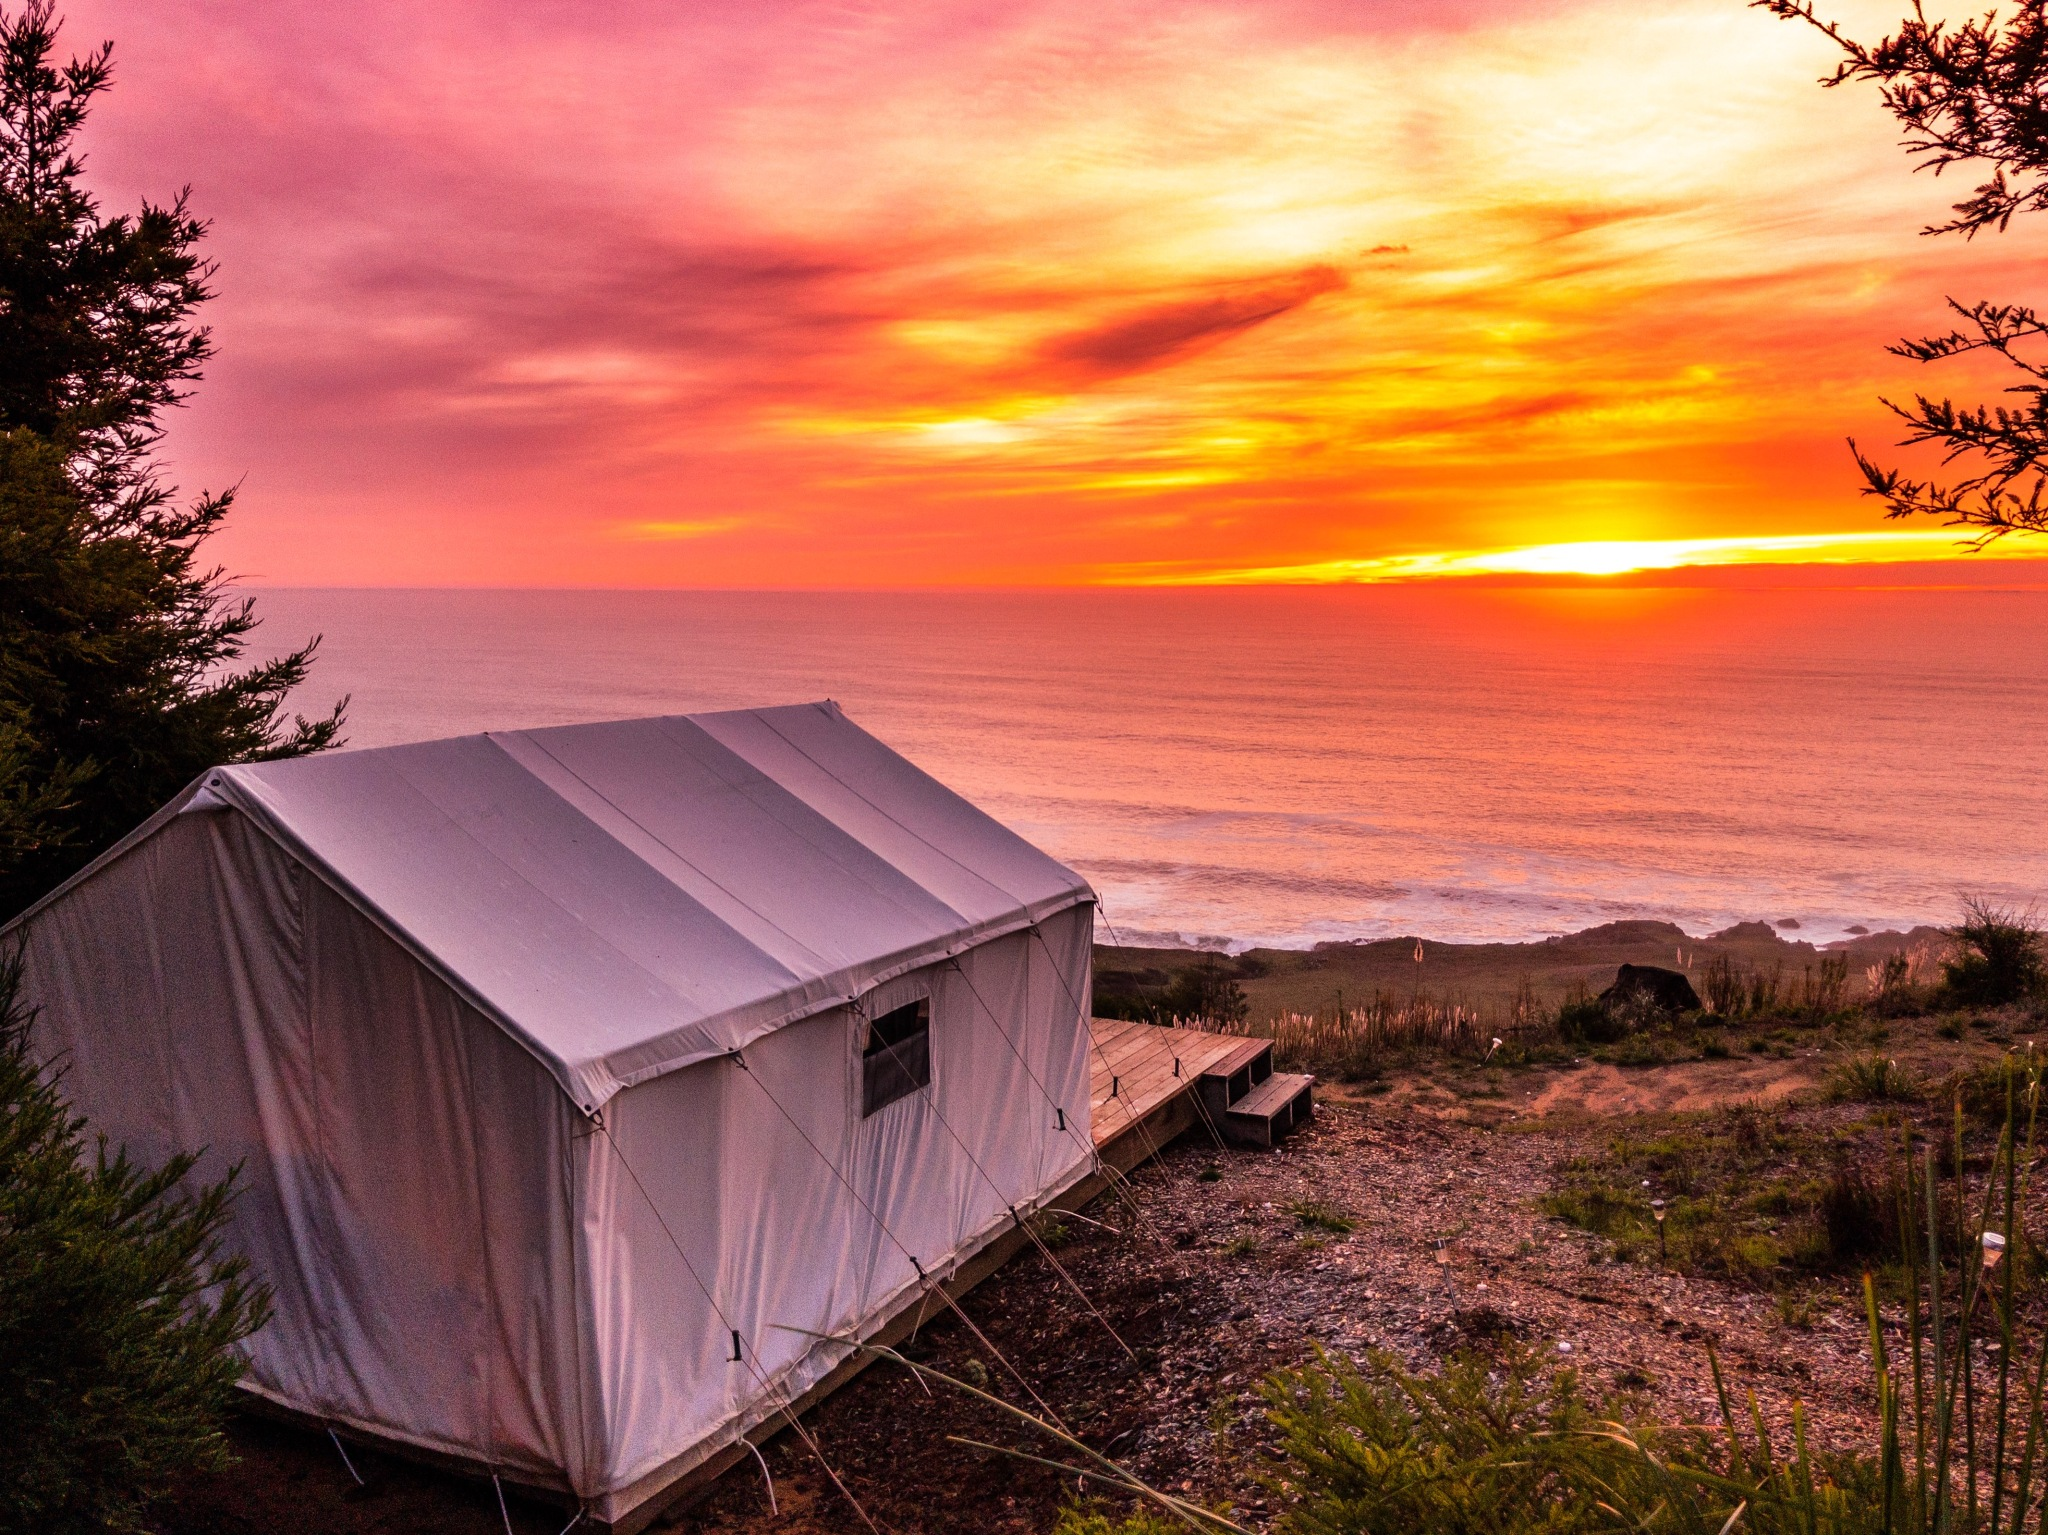 The ocean views from the tents at Terra Gl&ing in Northern California. Courtesy of Terra Gl&ing & Glamping: The 9 best resorts in the U.S. - Curbed